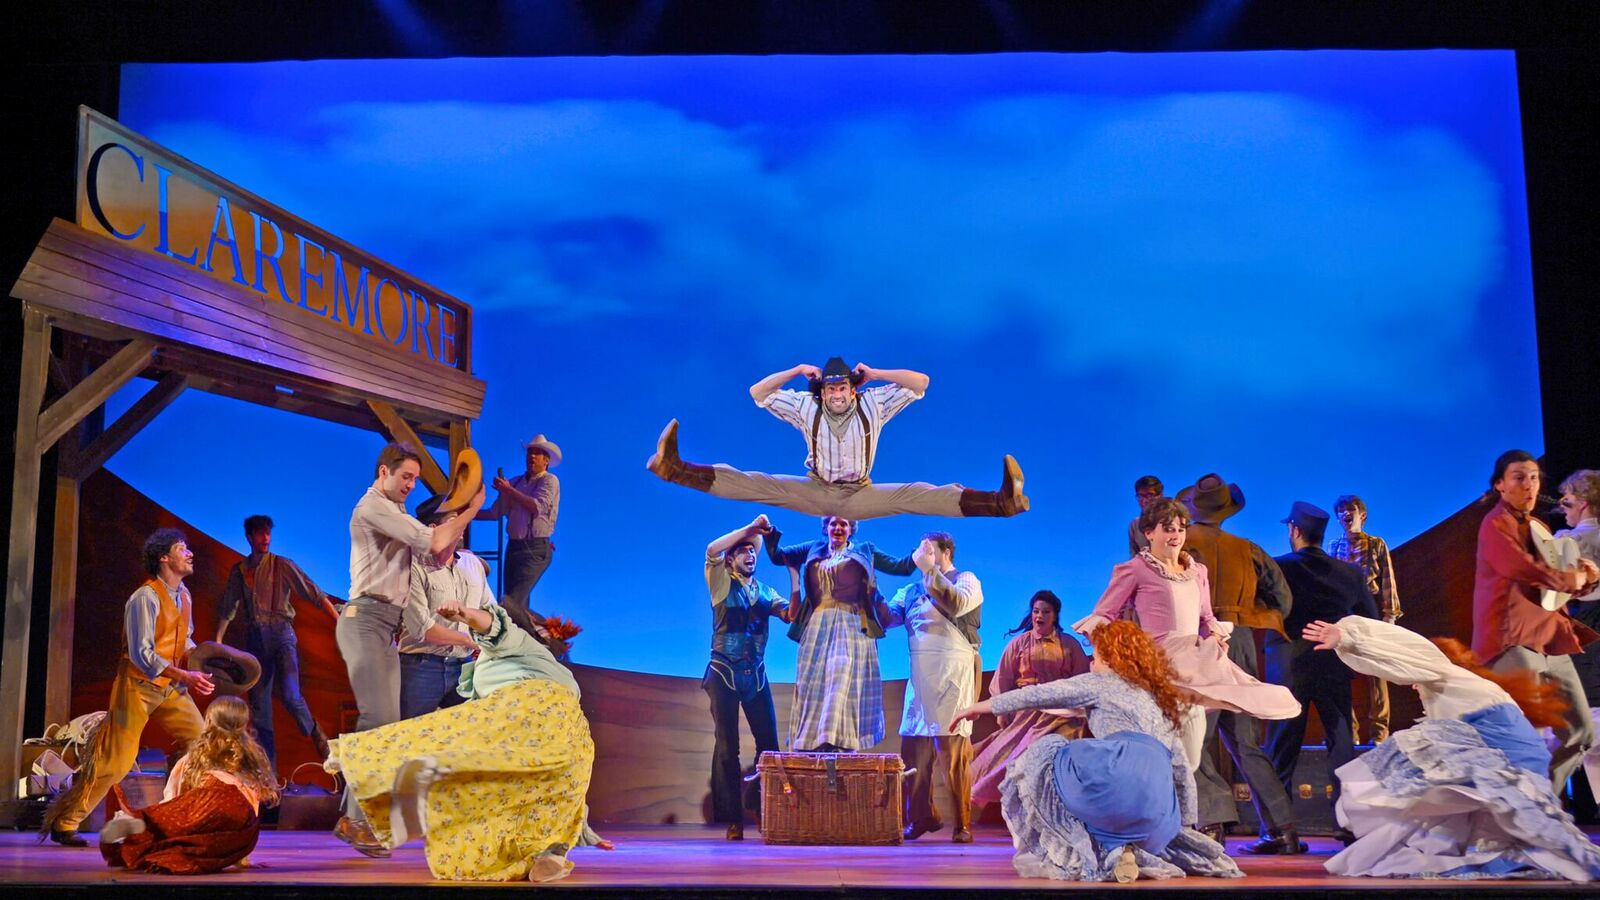 Theatre oklahoma photo by salvador farfancaught in the moment photography as is the big one malvernweather Images